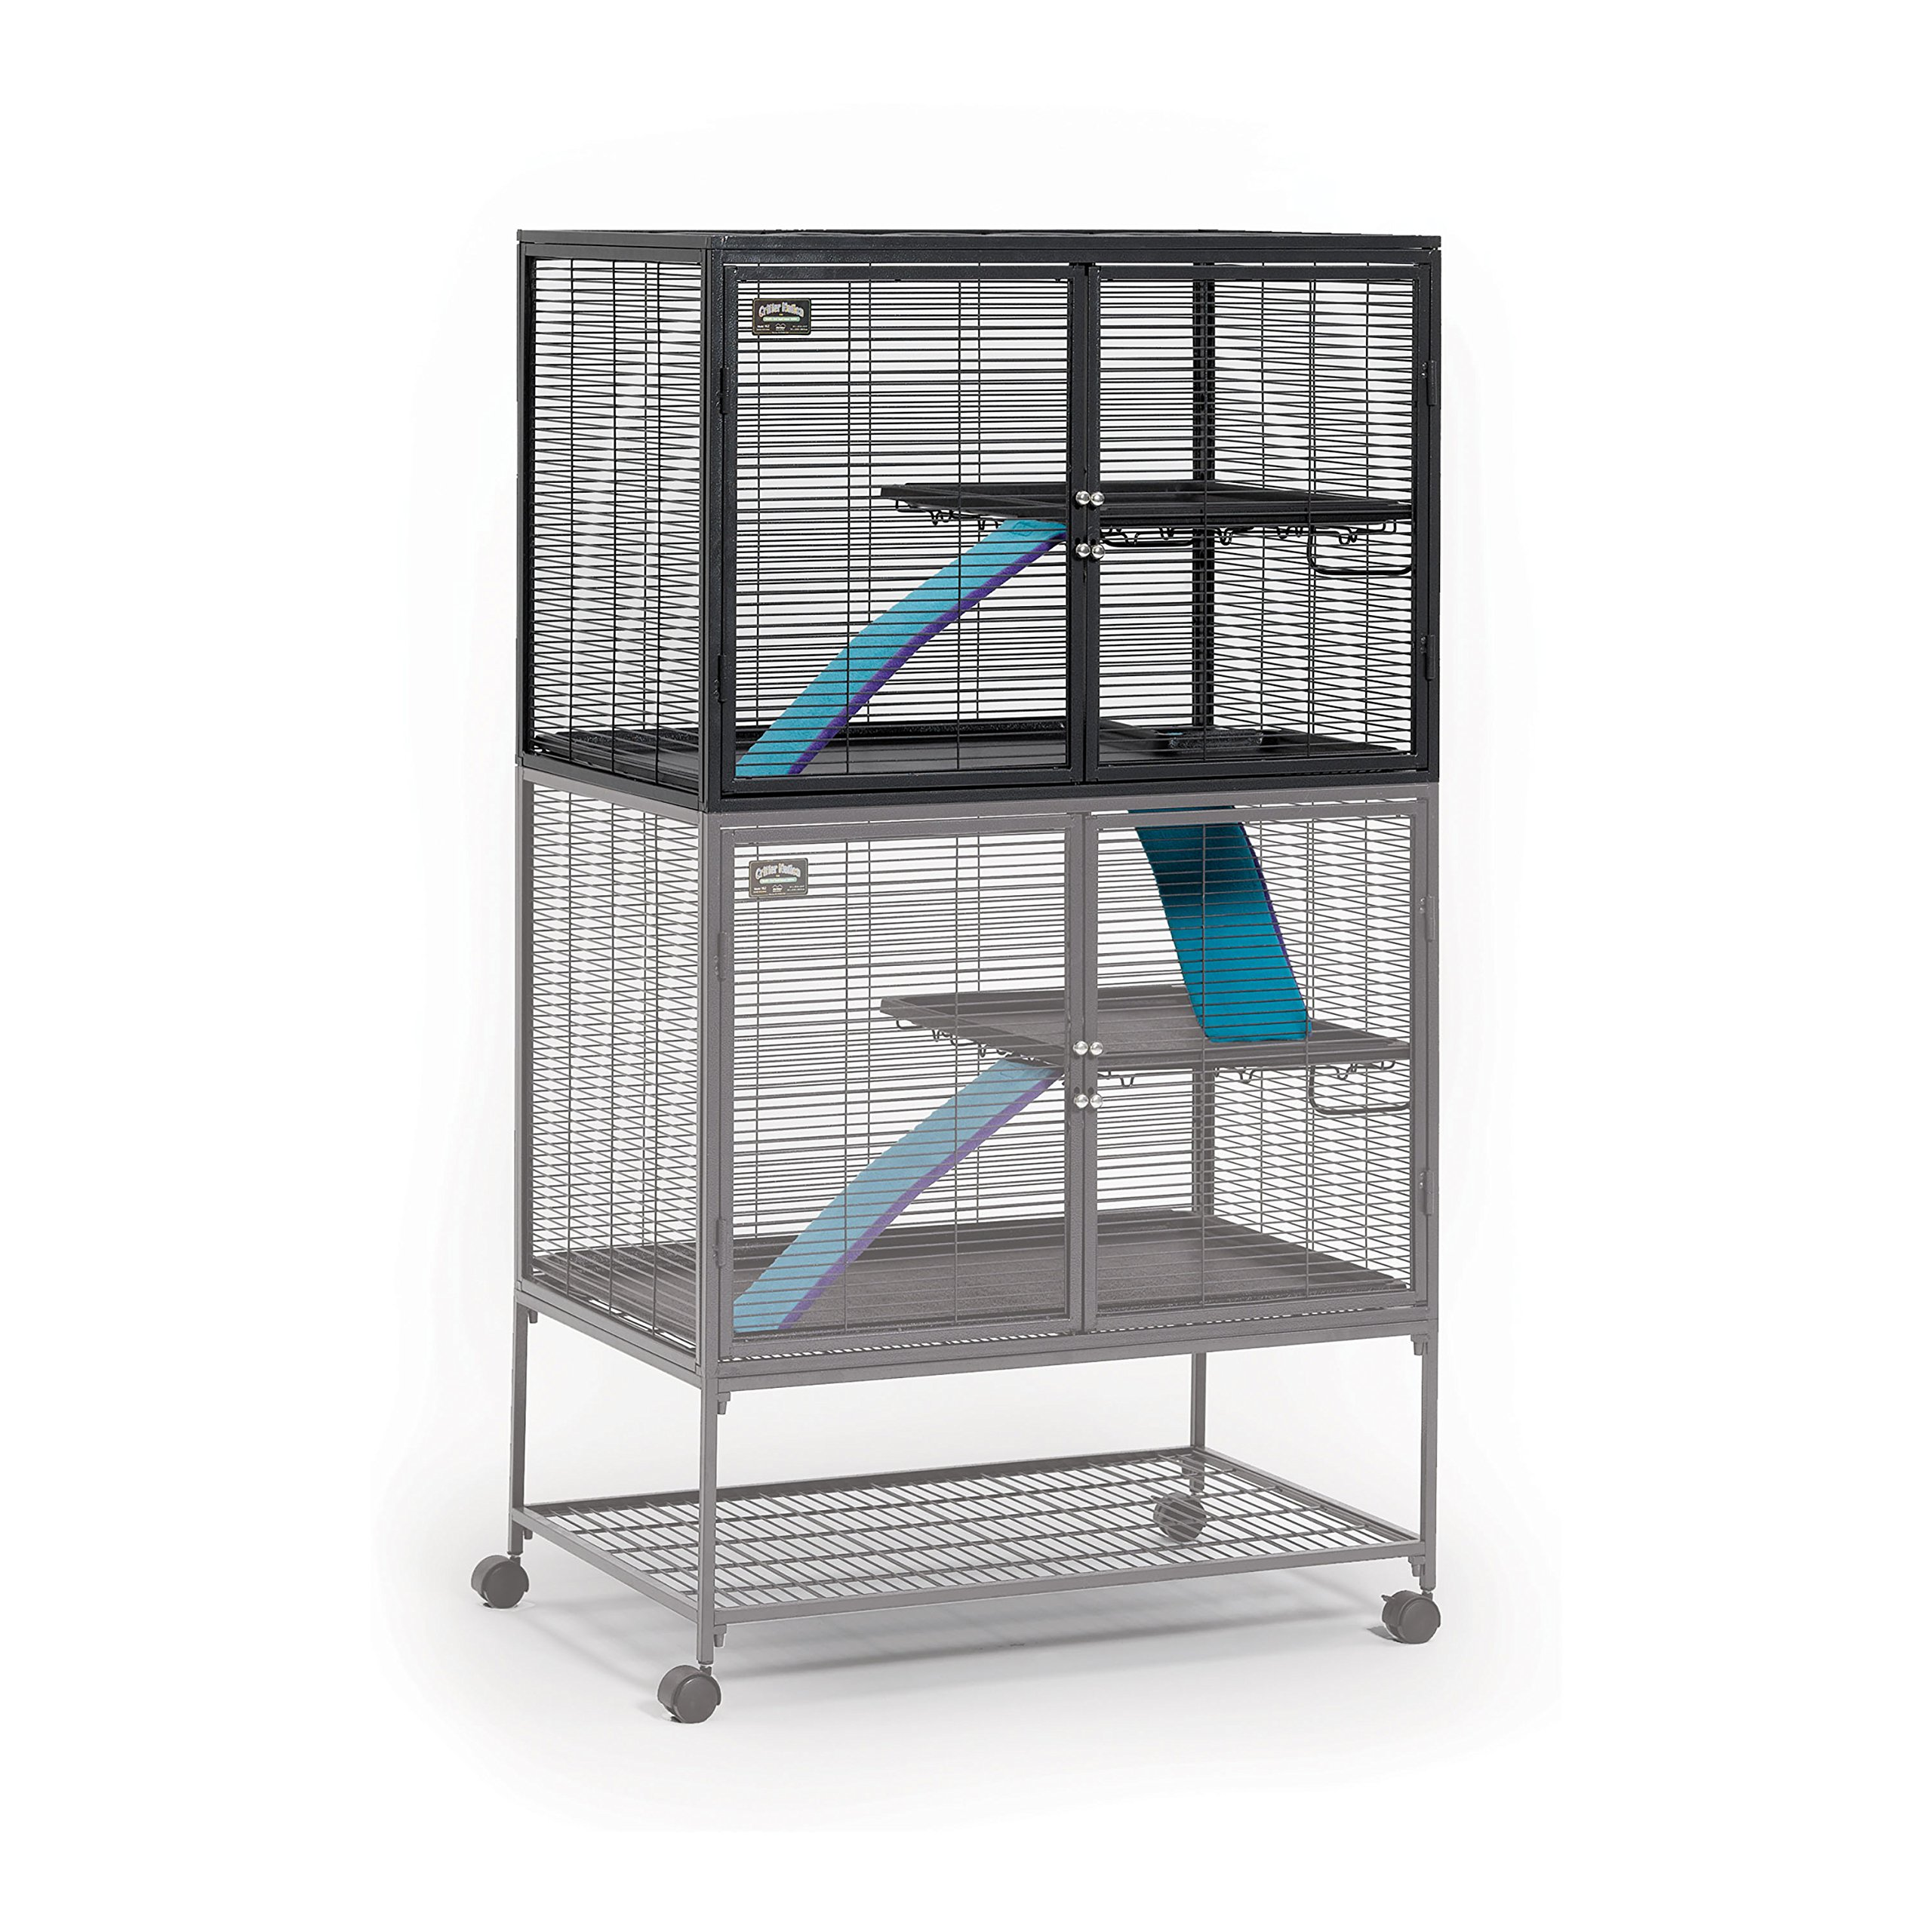 Midwest Deluxe Critter Nation Add-On Unit Small Animal Cage (Model 163) Includes 1 Leak-Proof Pan, 1 Shelf, 1 Ramp w/Ramp Cover. Compatible w/Critter Nation Models 161 & 162